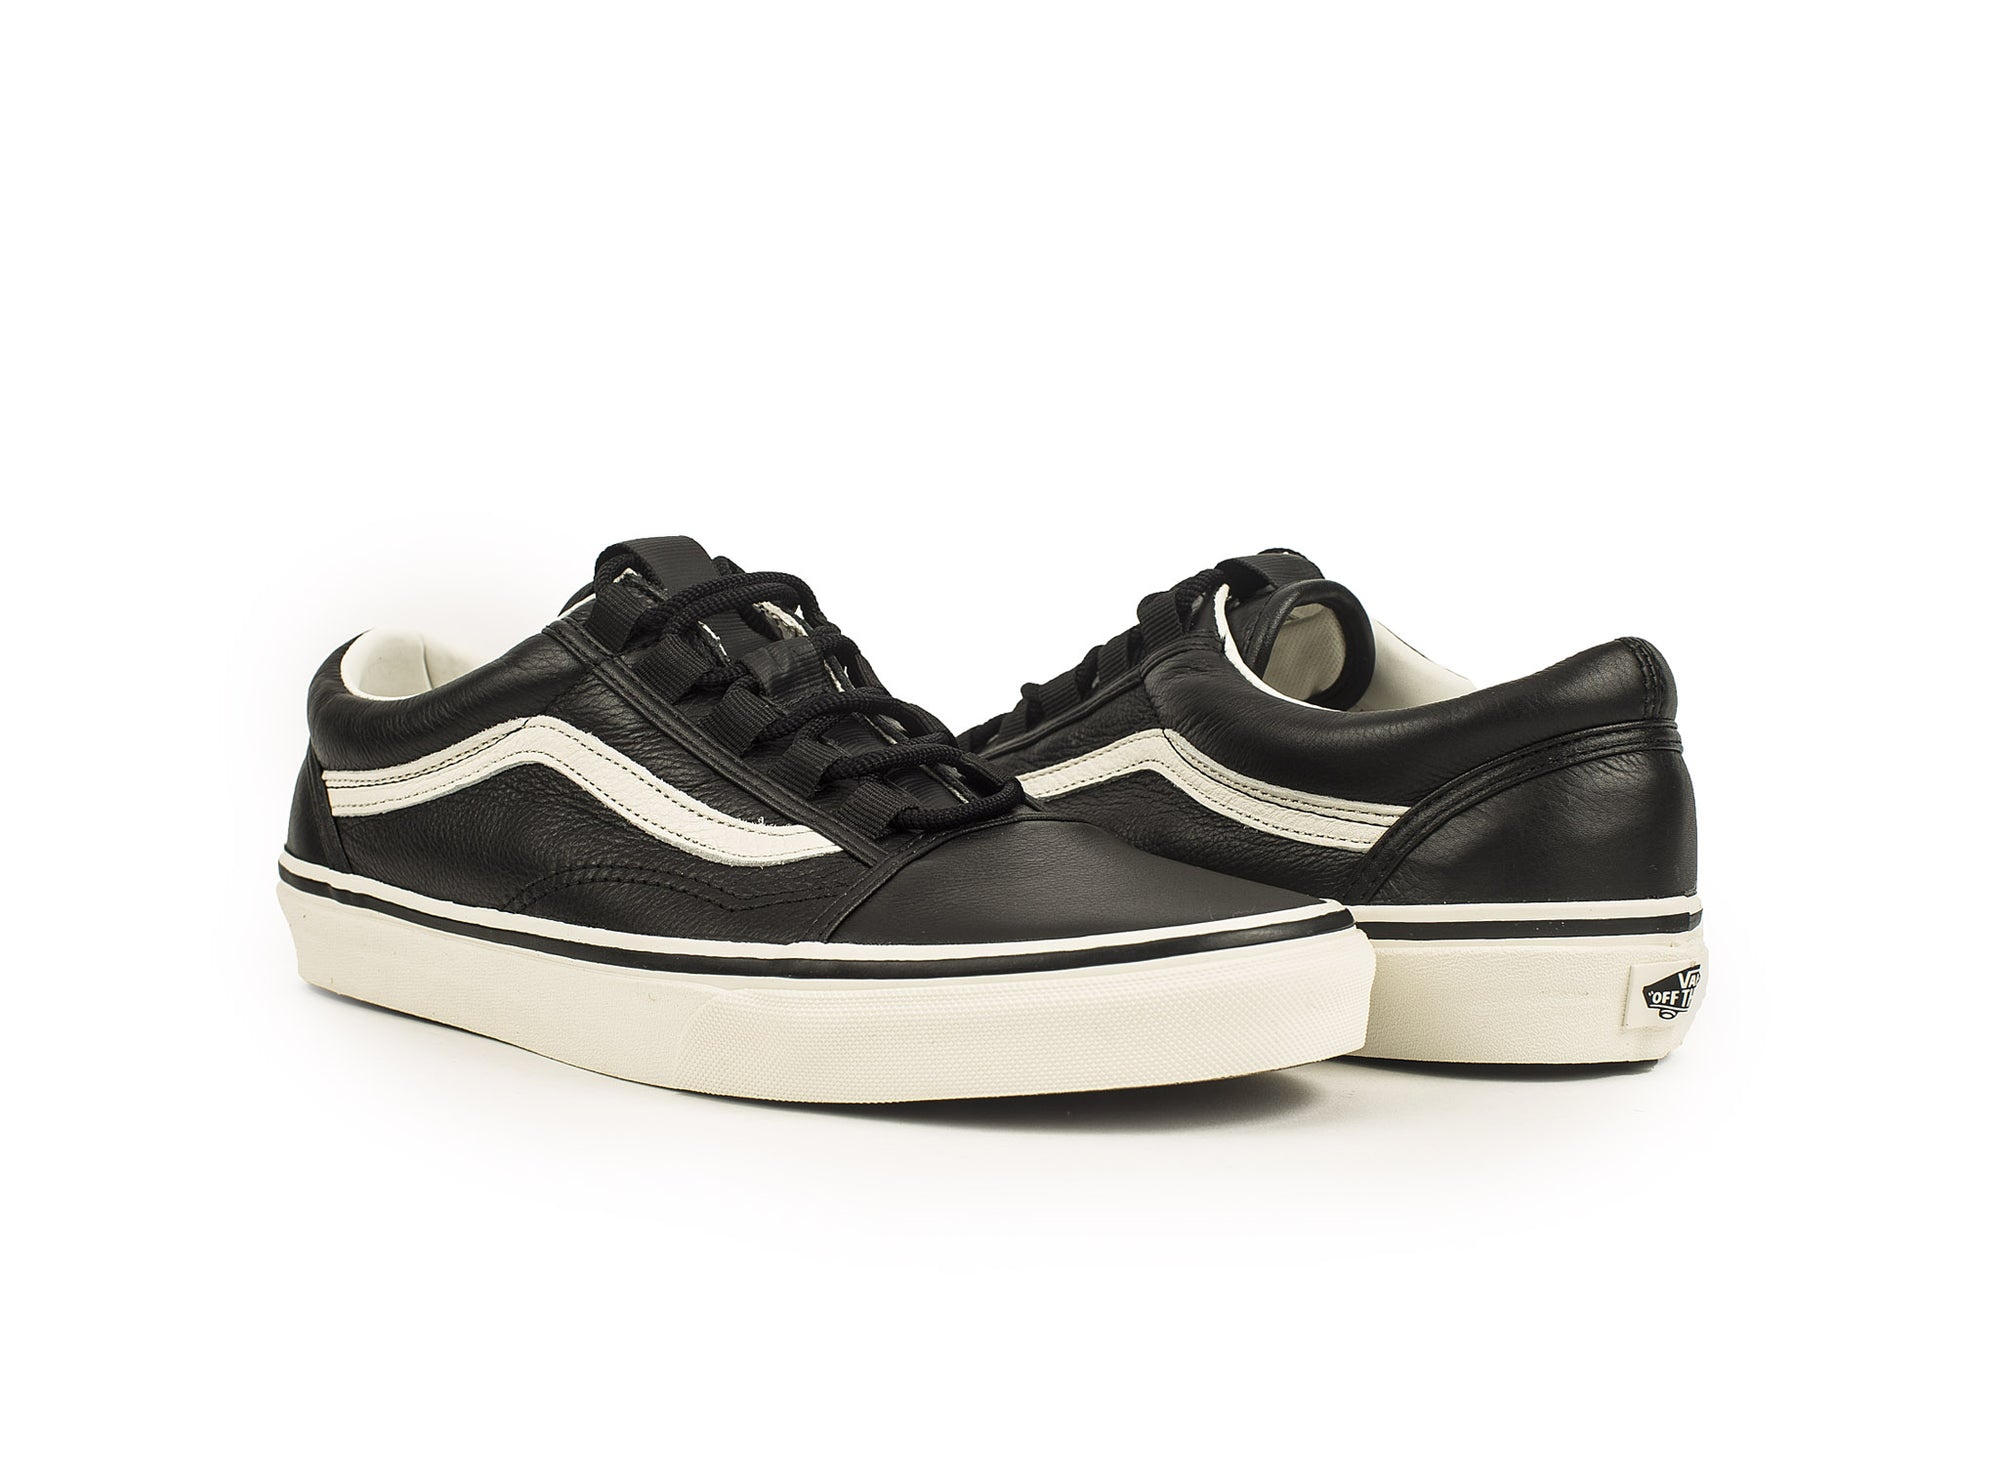 50a181fd500c VANS UA OLD SKOOL GHILLIE - Oneness Boutique